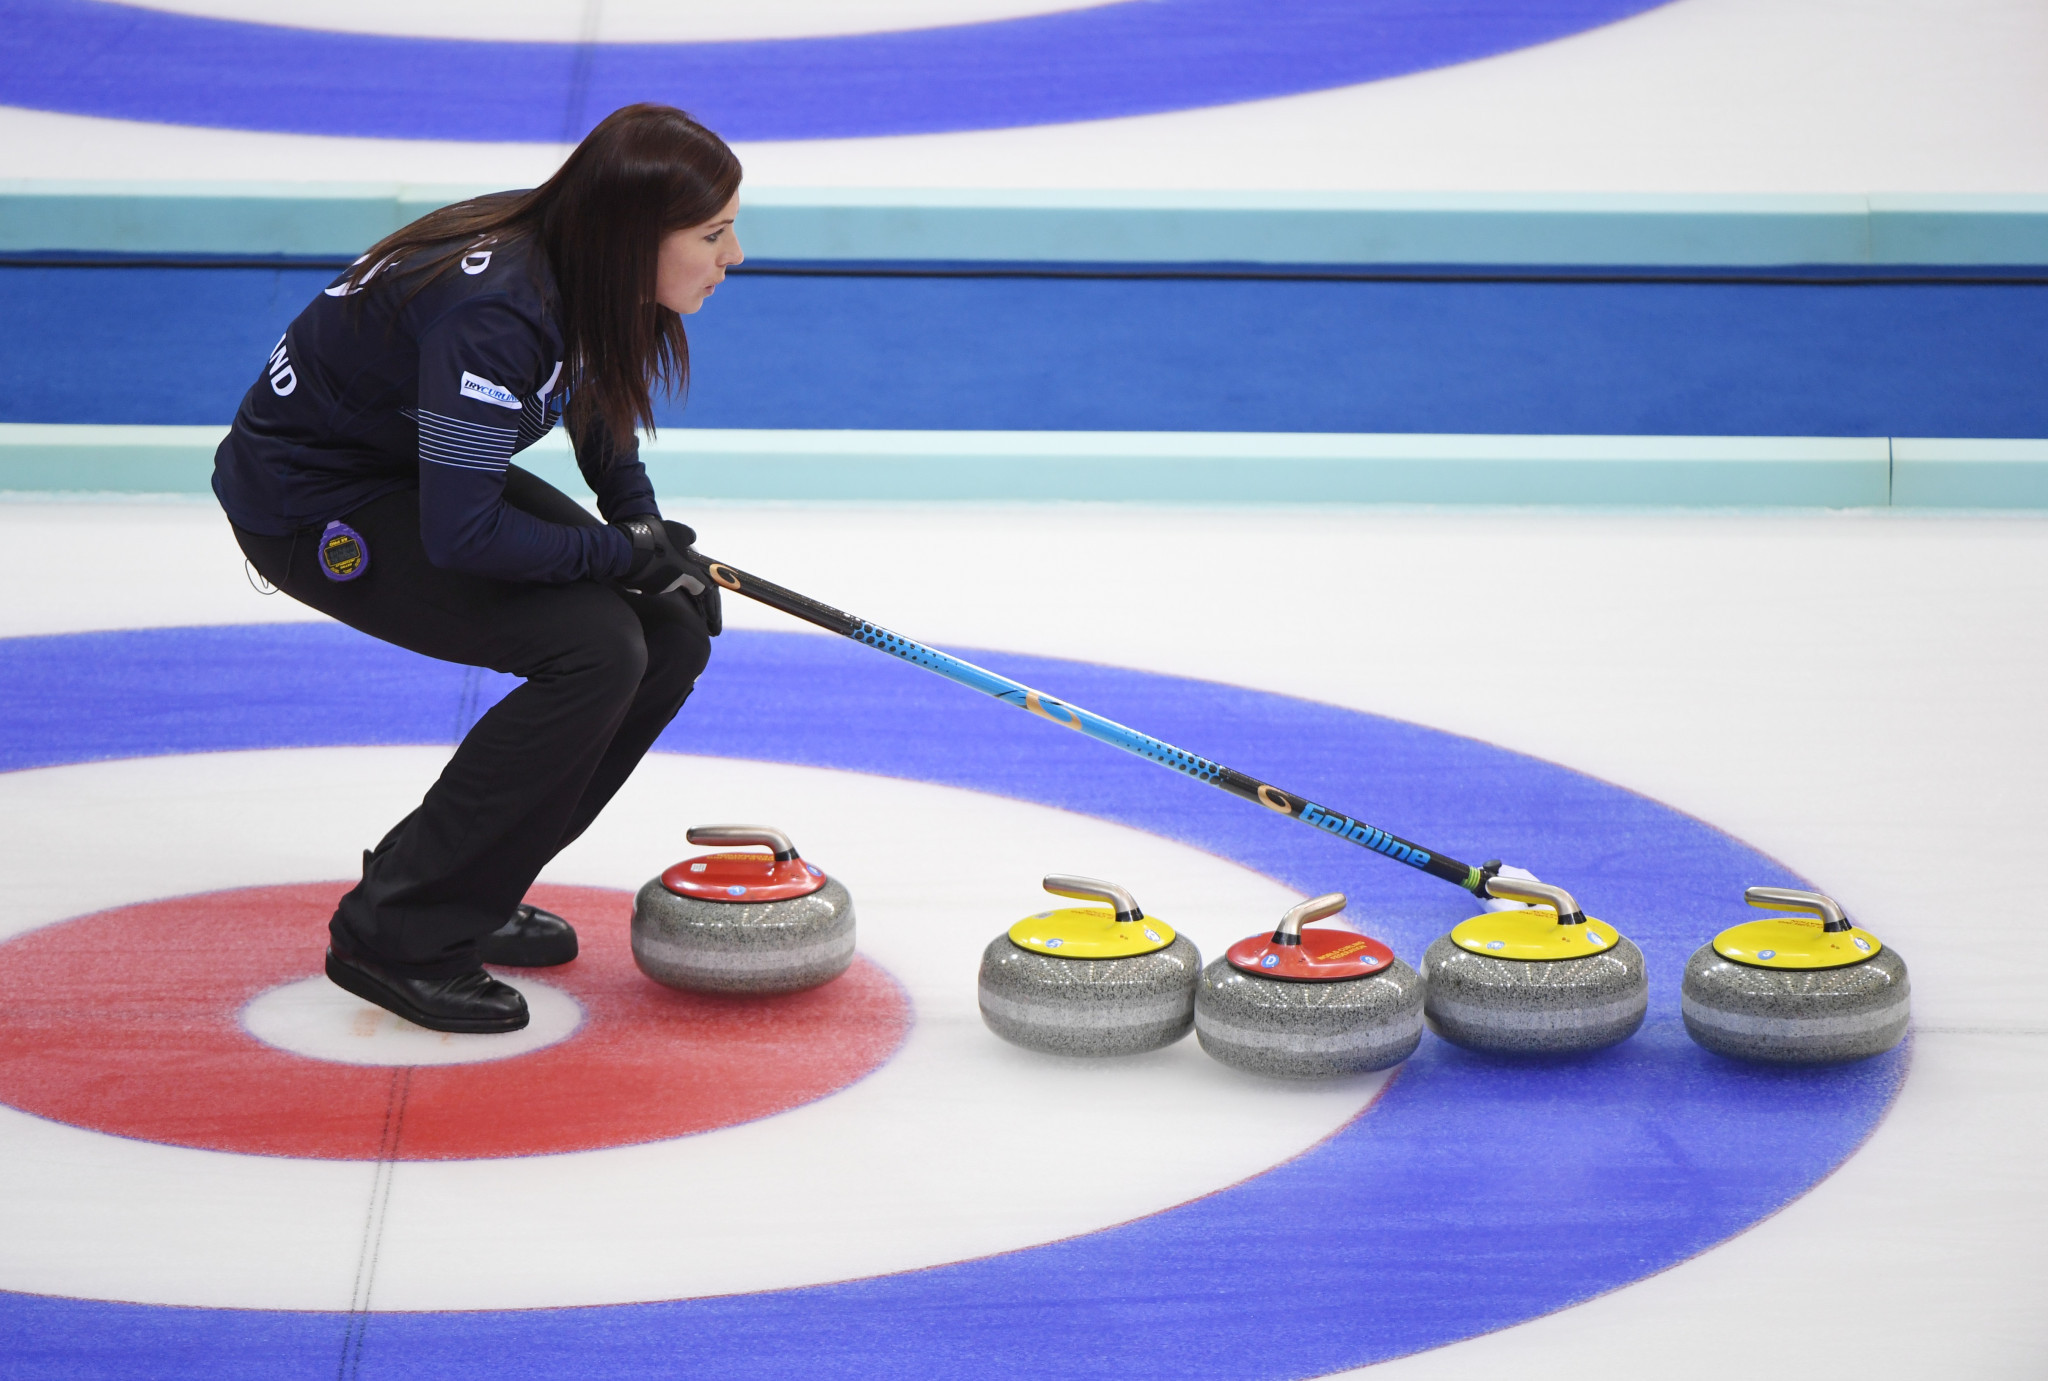 Scotland to host World Mixed Doubles Curling Championship despite COVID-19 lockdown